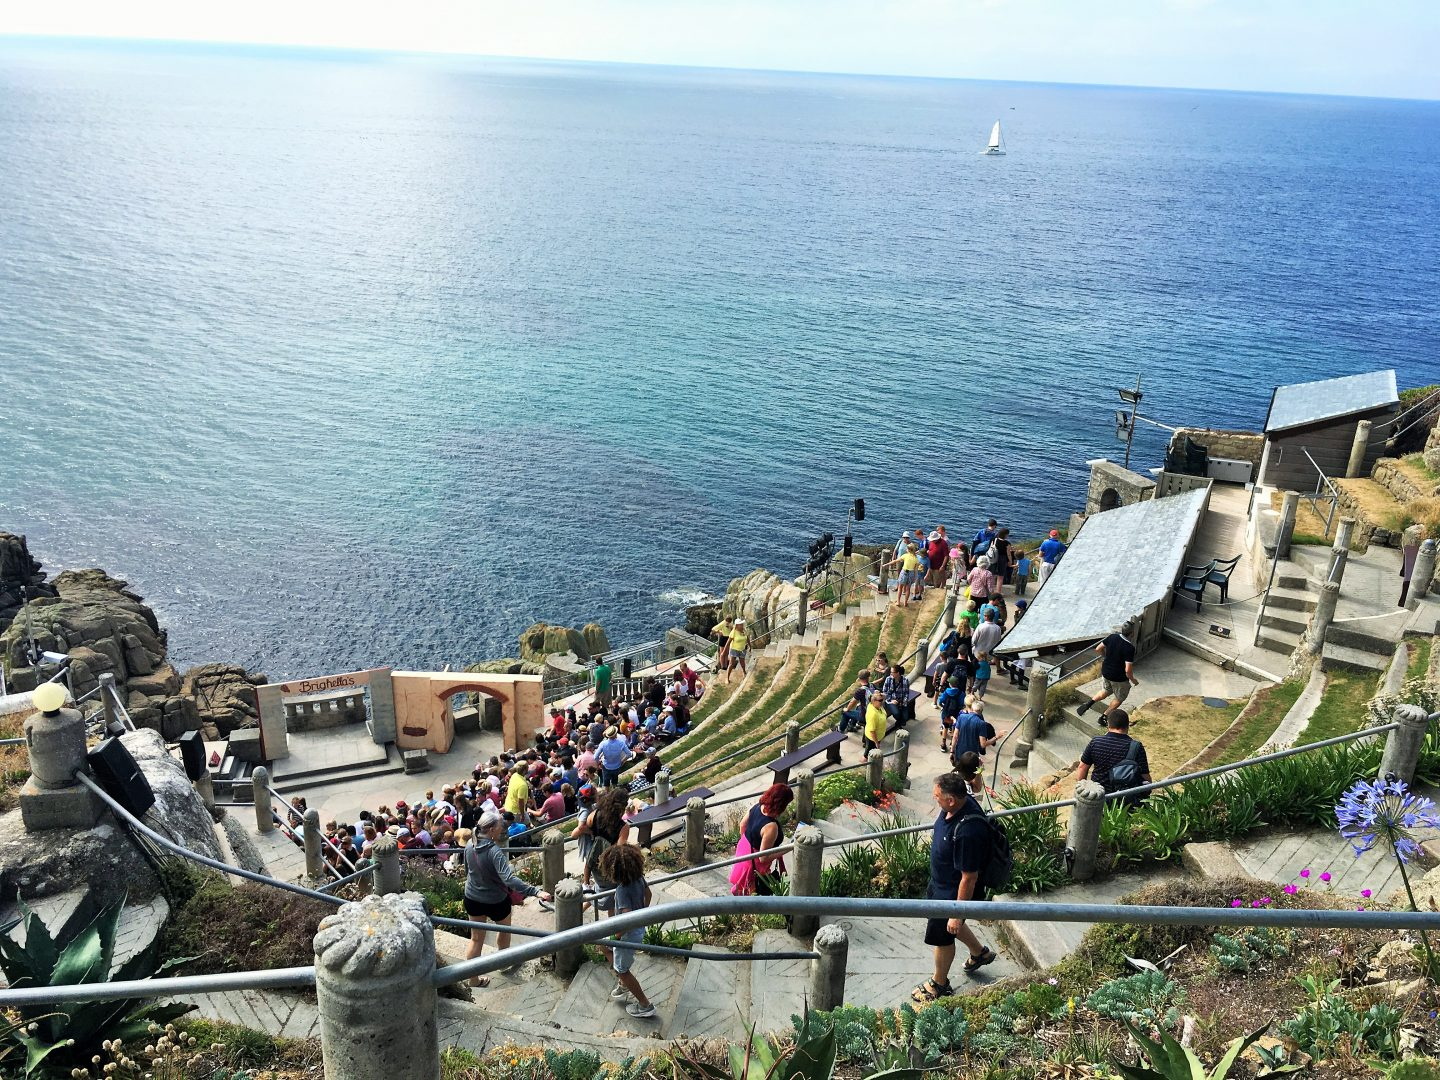 The mesmerising view of the Atlantic Ocean from the Minack Theatre, Cornwall outdoor theatre